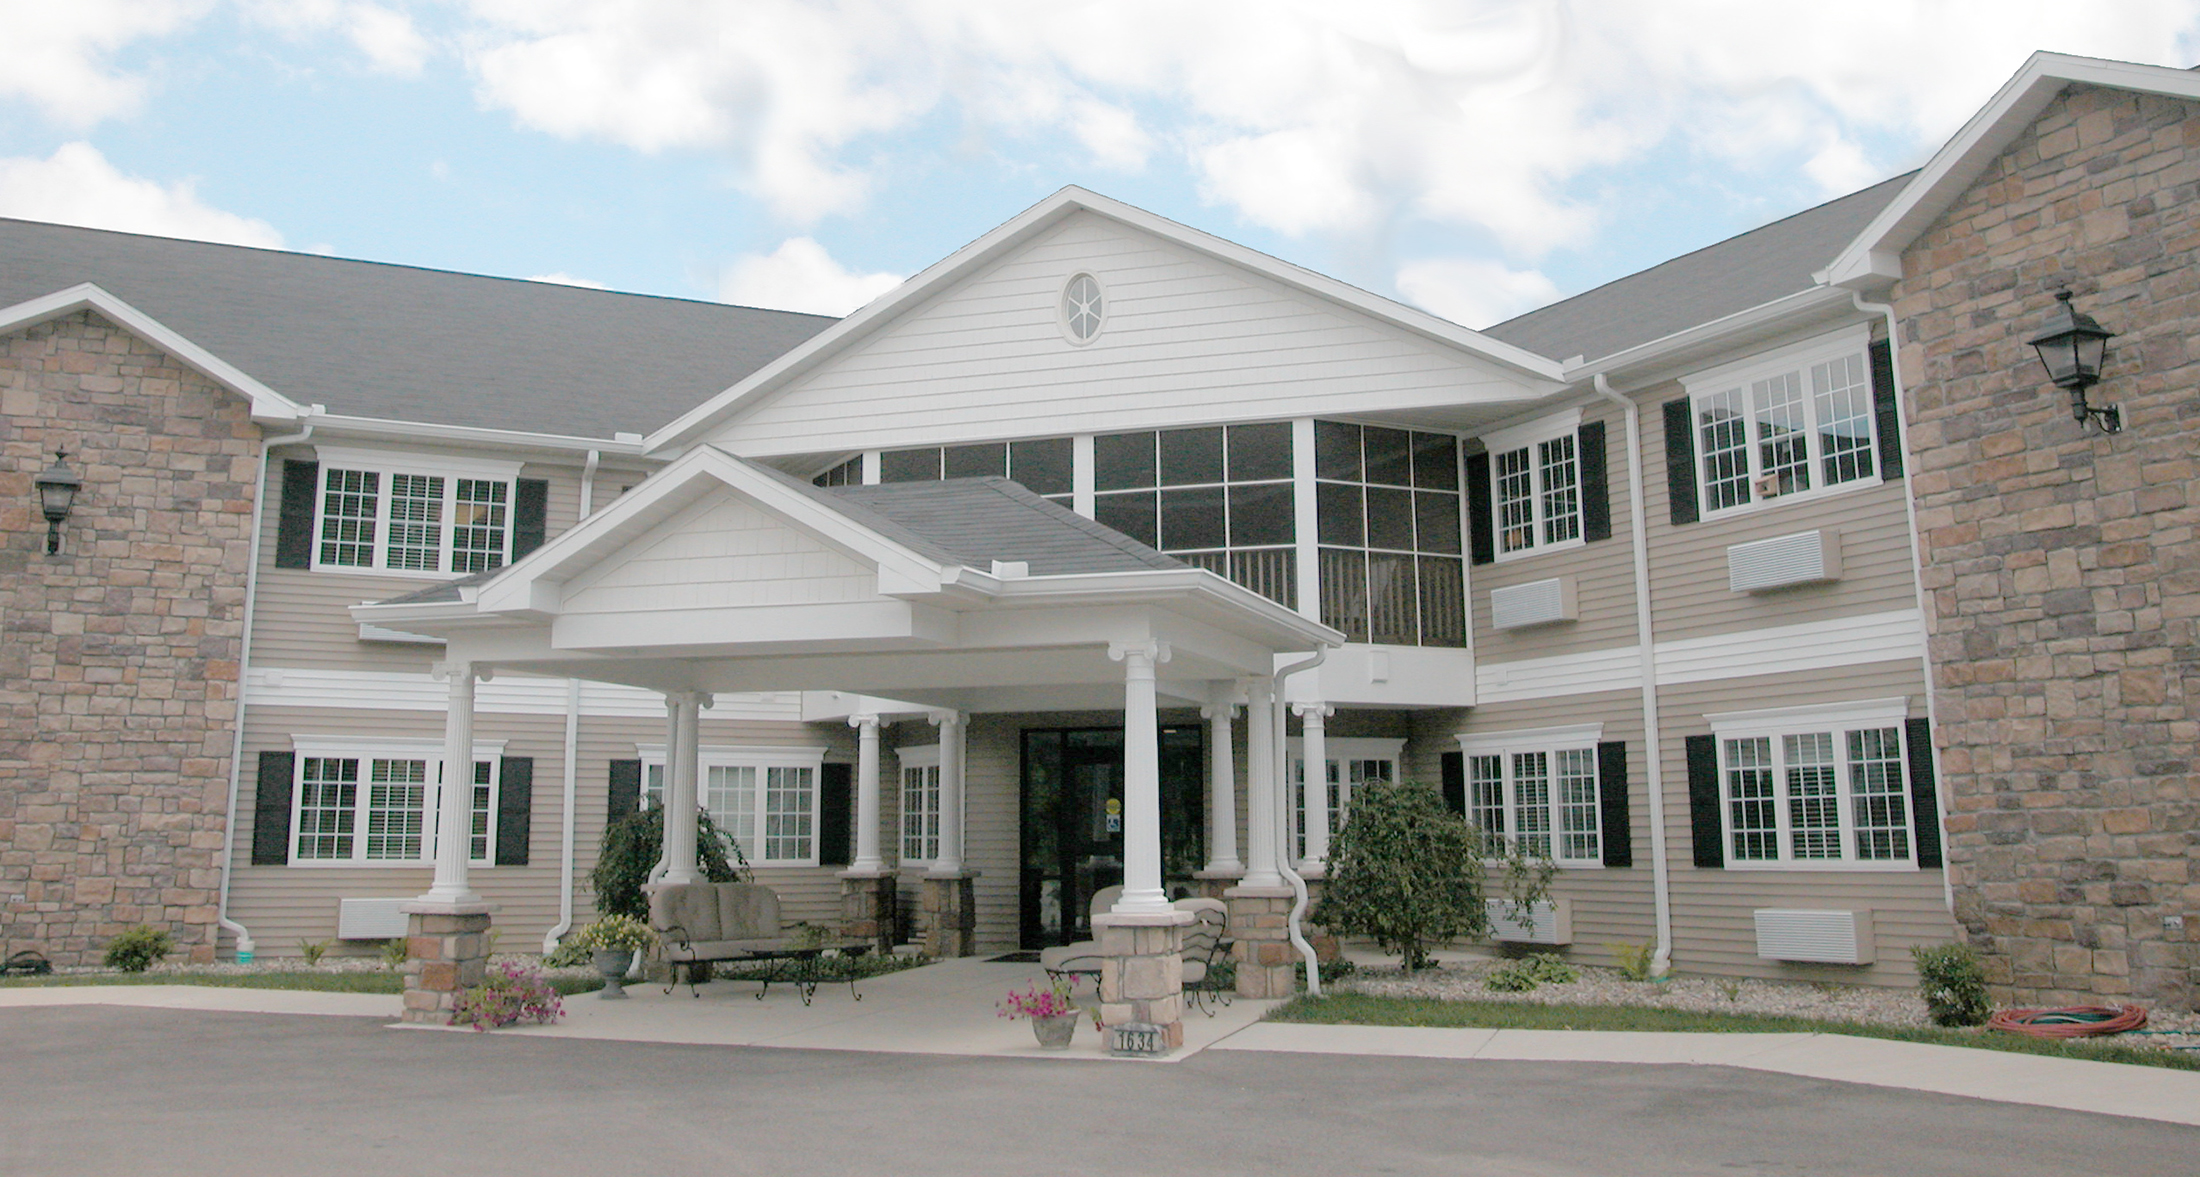 Warsaw Assisted Living Facility